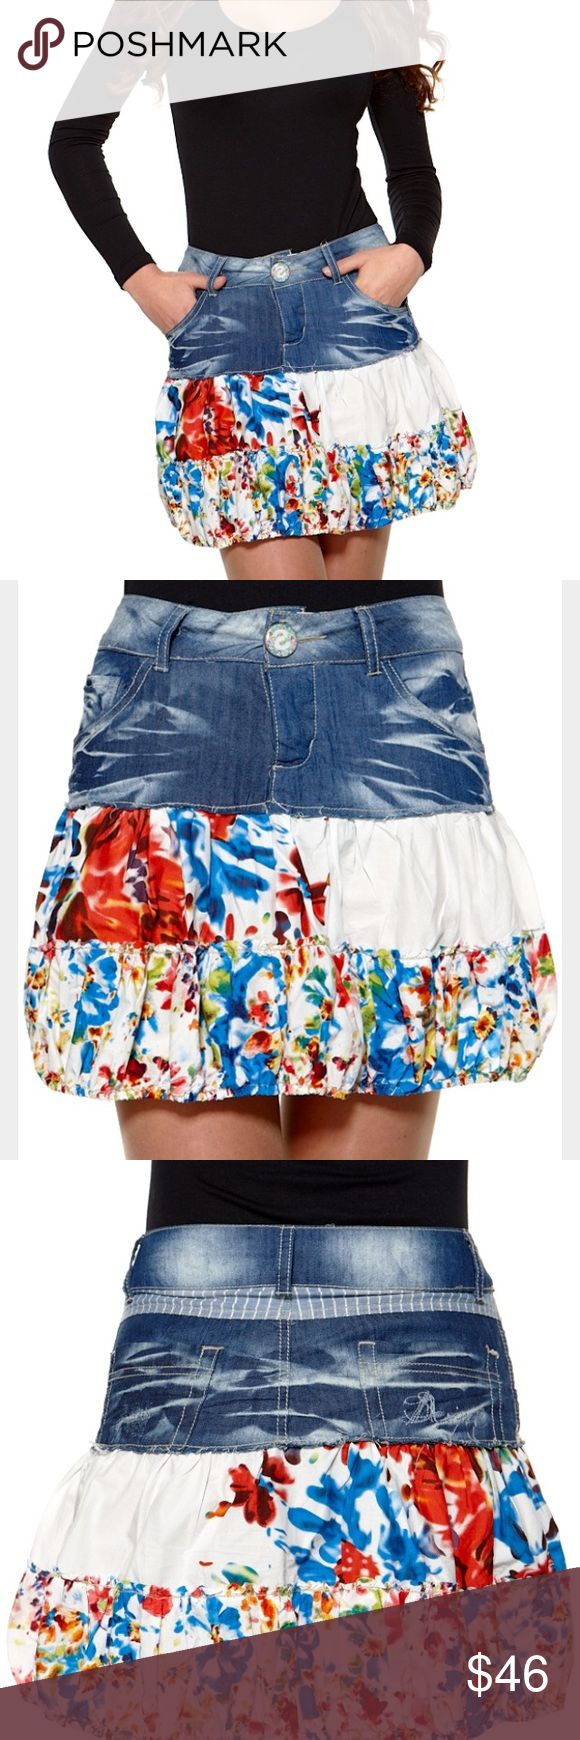 "Rare💥Desigual Boutique Designer Denim Skirt Rare unique piece! Desigual Katekub Rock denim jean skirt. Multicolored: blue, yellow, green, red. Size 34/XS. Length: 16"" Waist: 13.5"" Gorgeous intense floral print! Would be so perfect for a 80s party and even everyday! (First three photos are stock photos) Tags: Patchwork design, trendy, vintage, 80's, 90's, rock, damen, grunge. Desigual Skirts A-Line or Full"